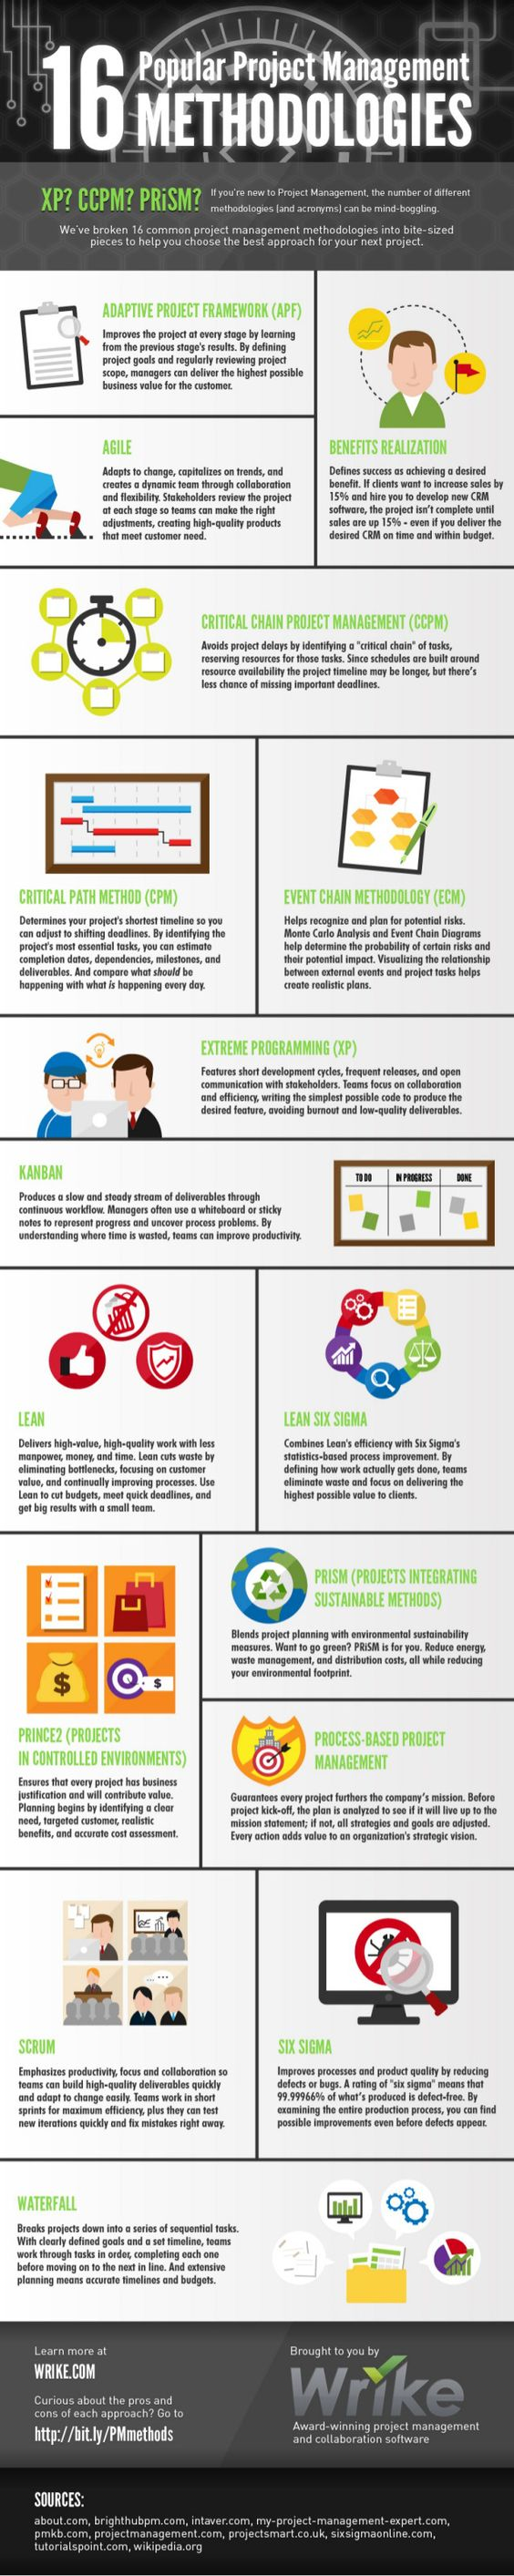 16 Popular project management methodologies #infographic JAMSO supports business through goal setting, KPI Management training and BI solutions #analytics Find out more